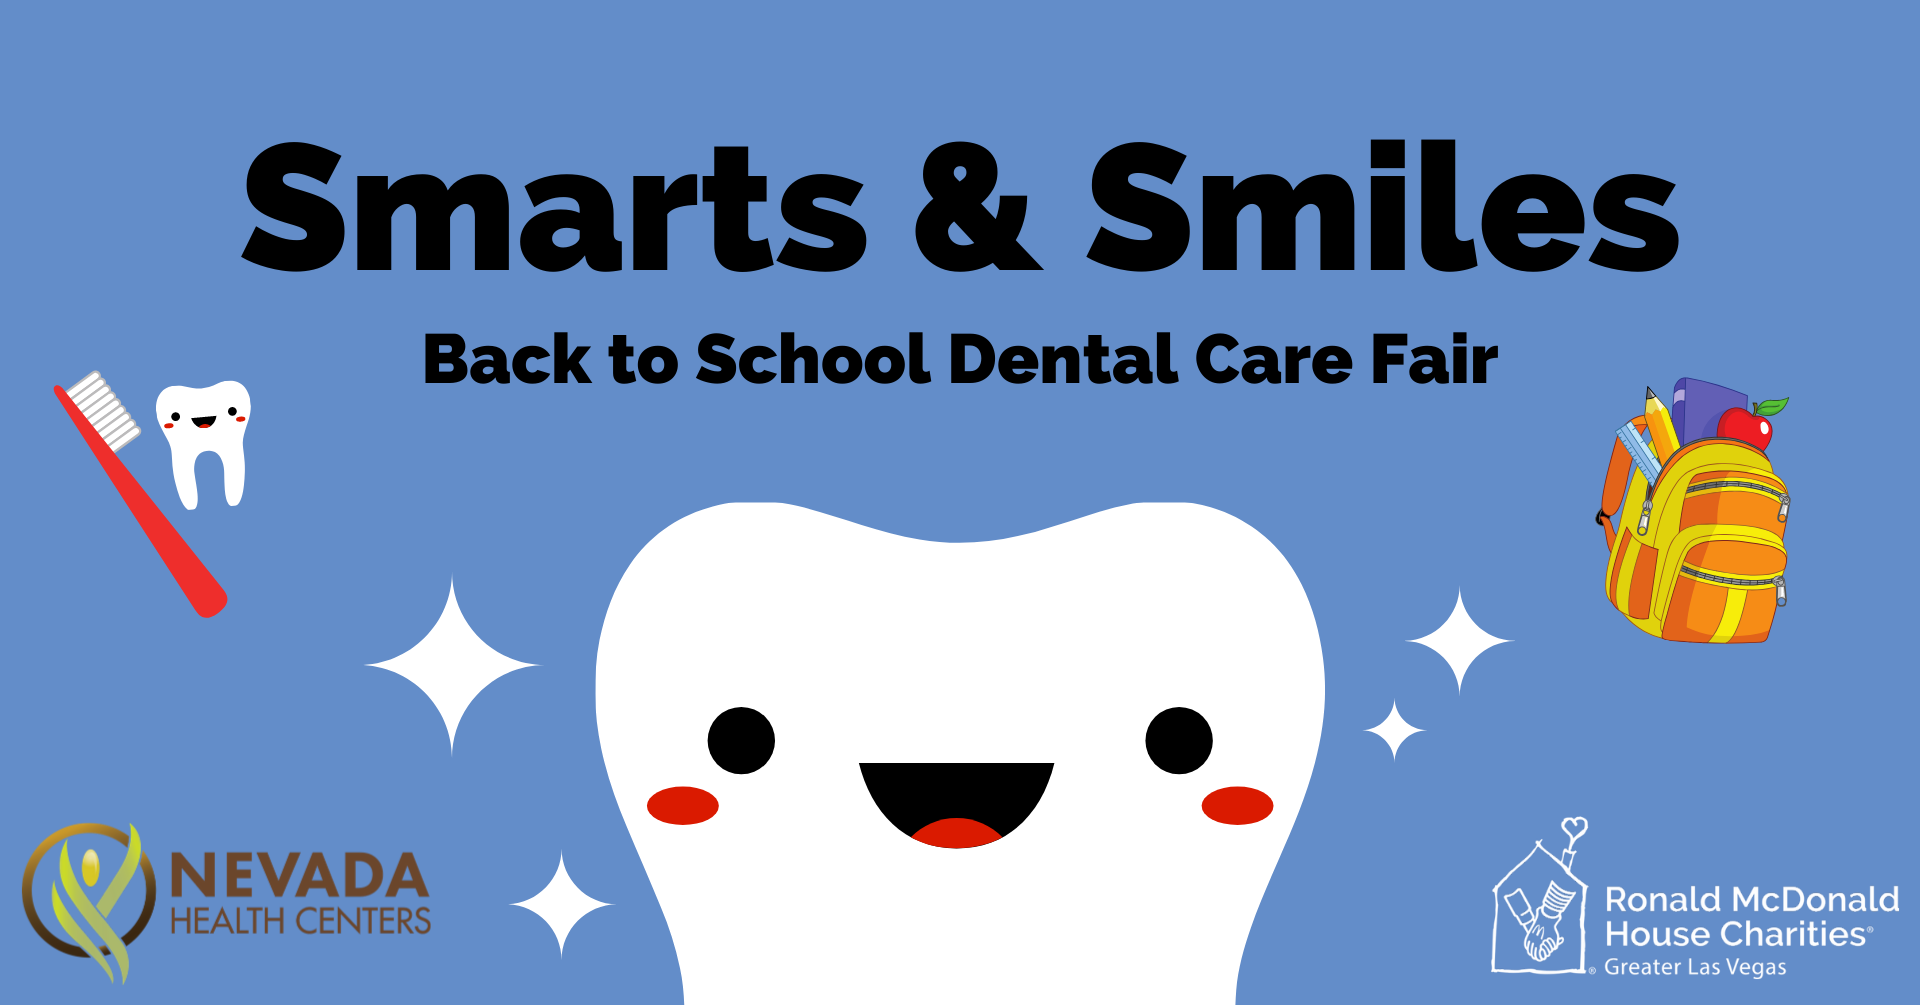 Smarts & Smiles FB Event Cover